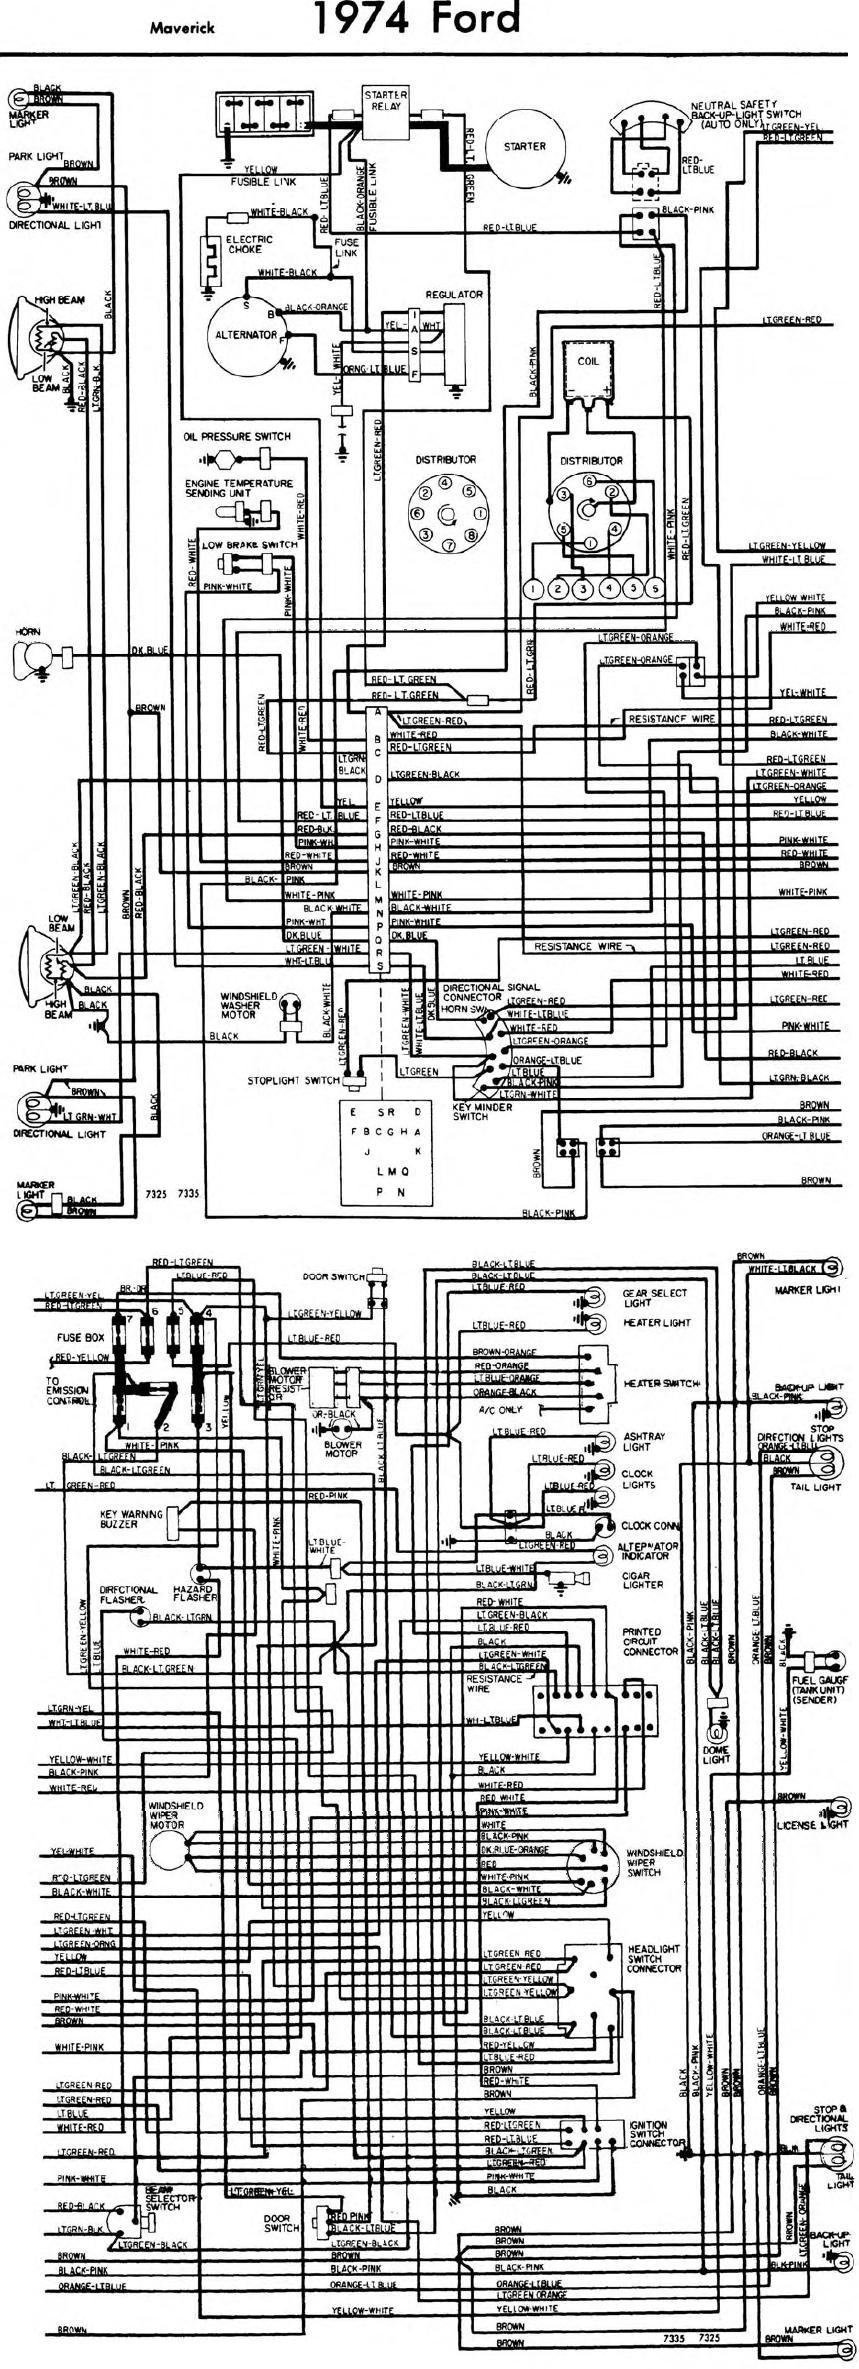 medium resolution of 1970 ford maverick wiring diagram wiring schematic data 95 ford starter solenoid wiring diagram 1970 ford